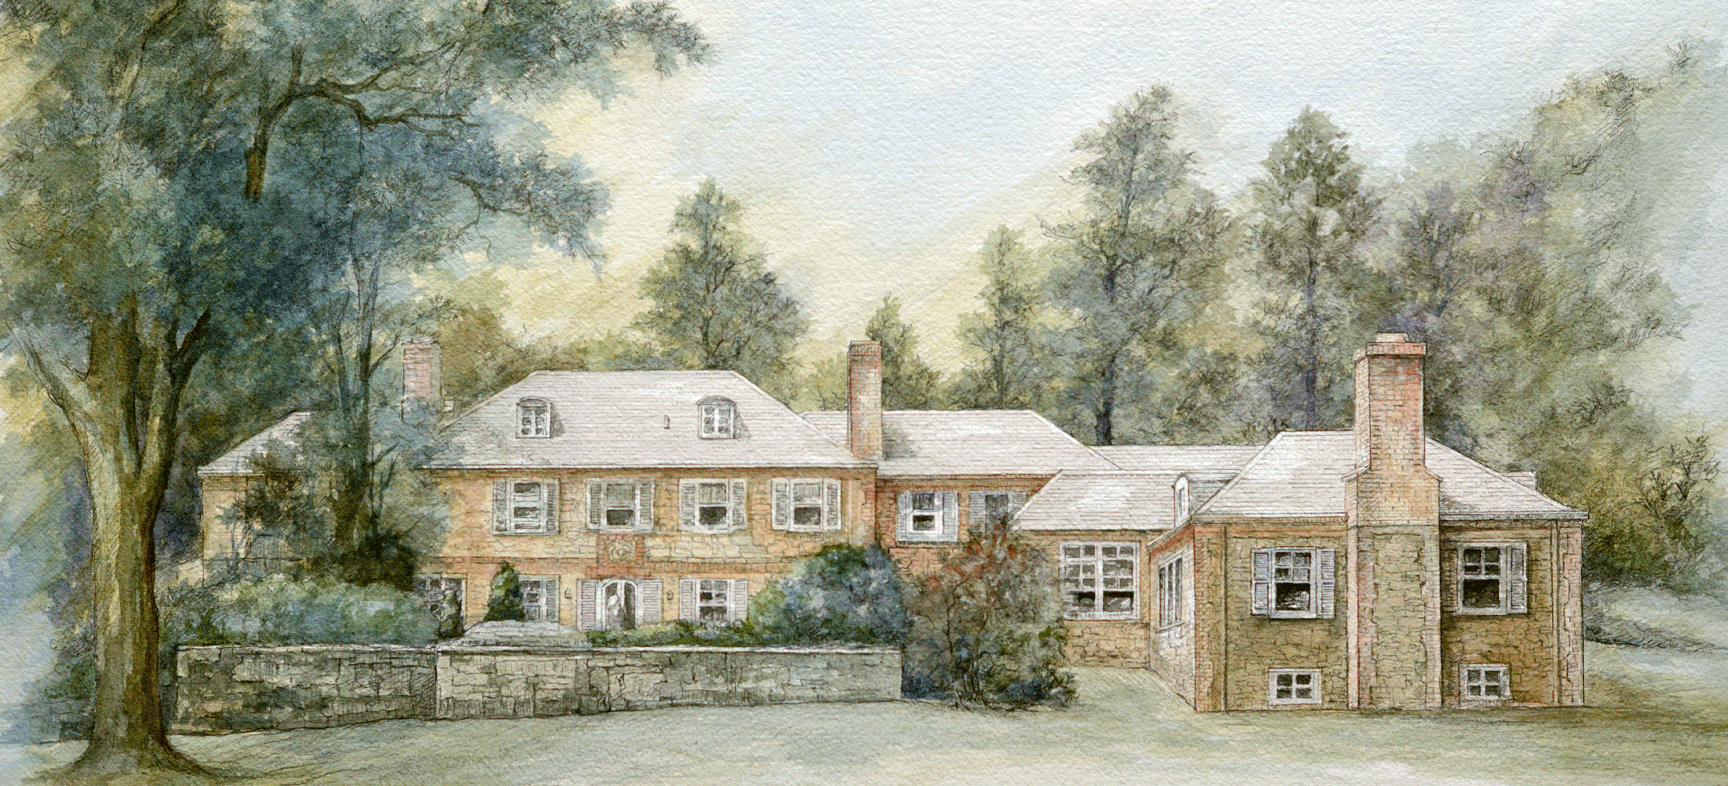 RENDERING OF A HOME